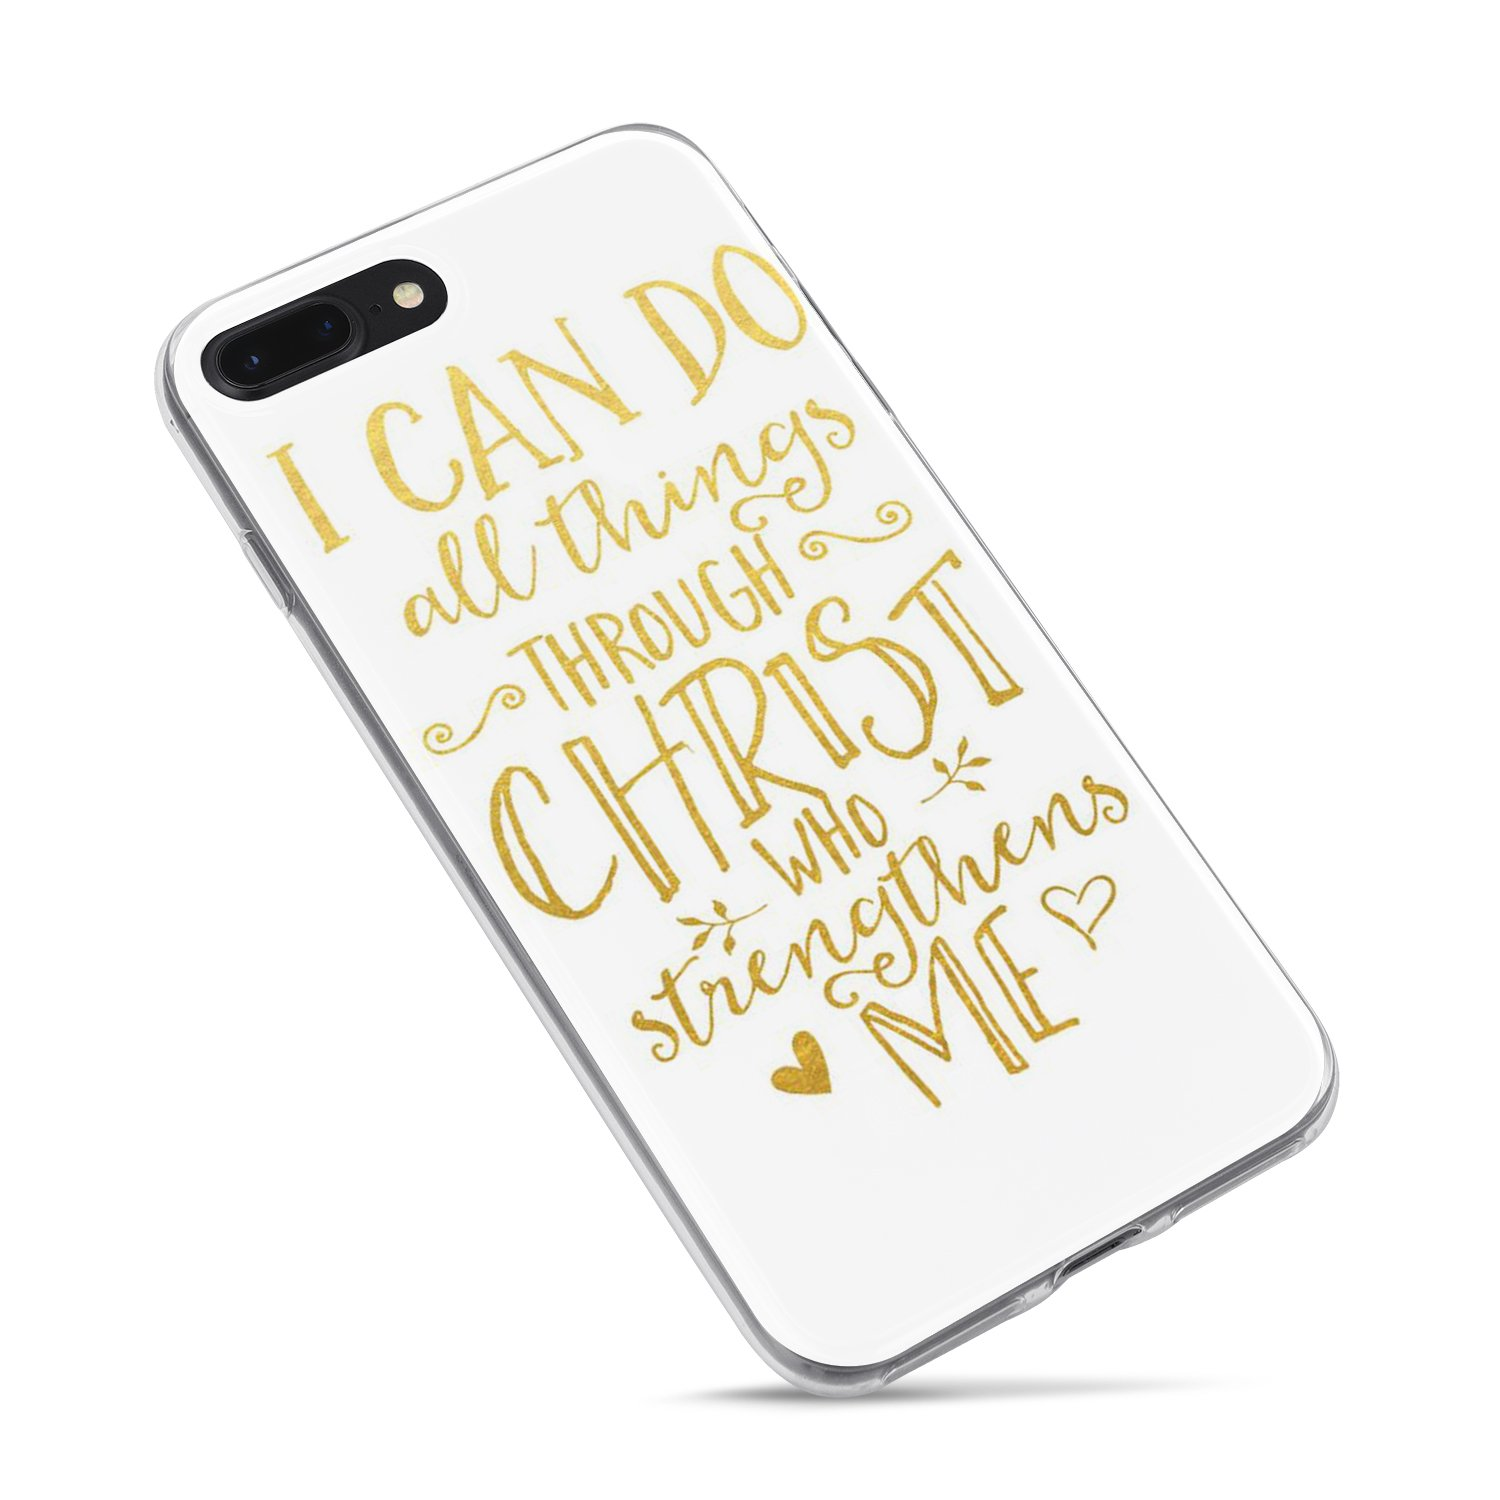 Iphone 7 Plus Girls Case Iphone 8 Plus Case Cute Bible Verses Christian Inspirational Motivational Life Quotes Can Do All Things Through Christ Soft